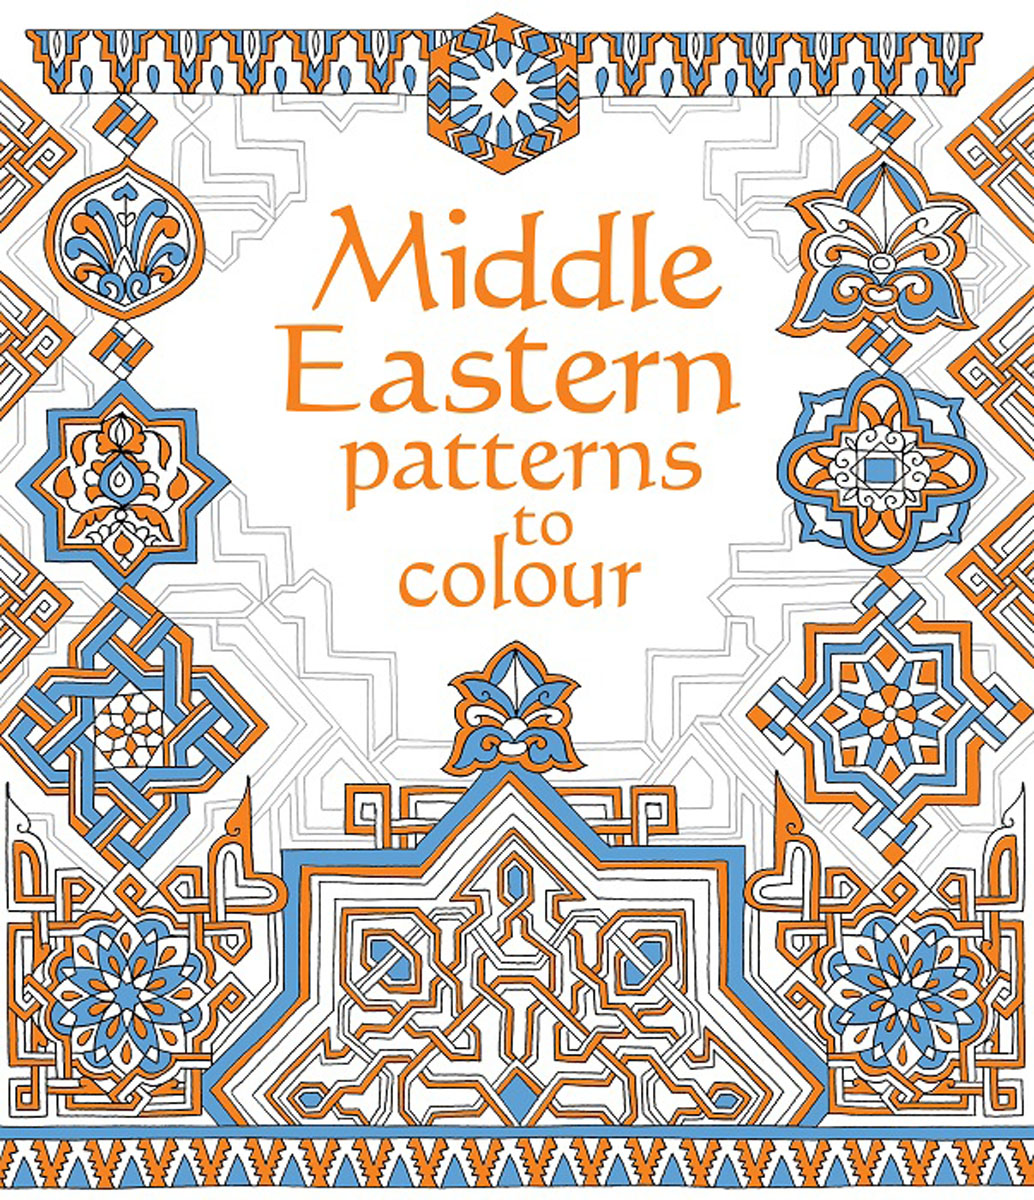 Middle Eastern Patterns to Colour patterns to colour